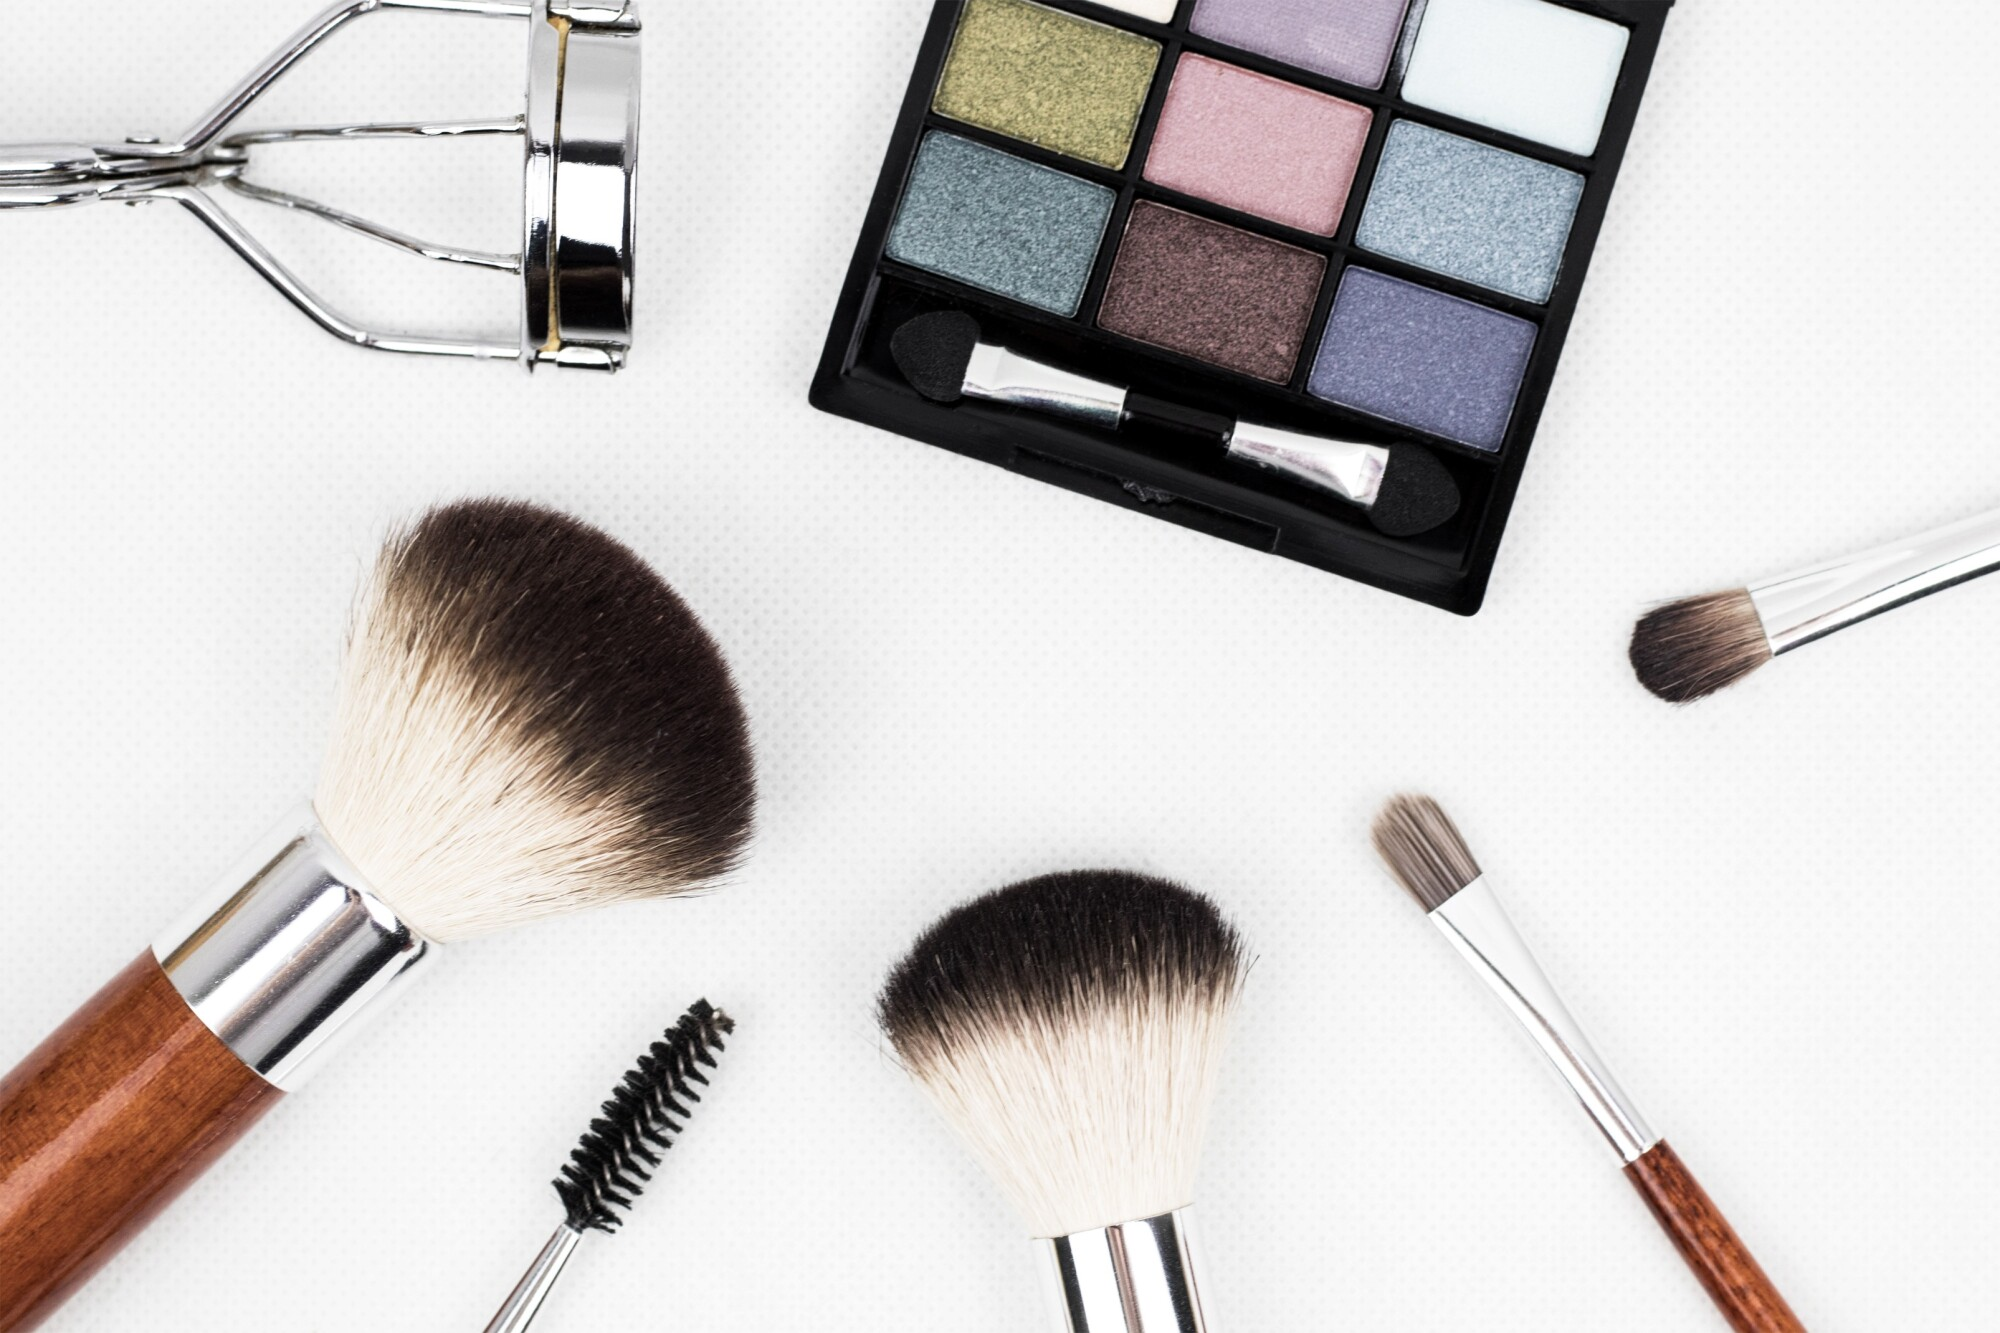 How to Organize Your Makeup and Get the Most Out of Your Beauty Routine